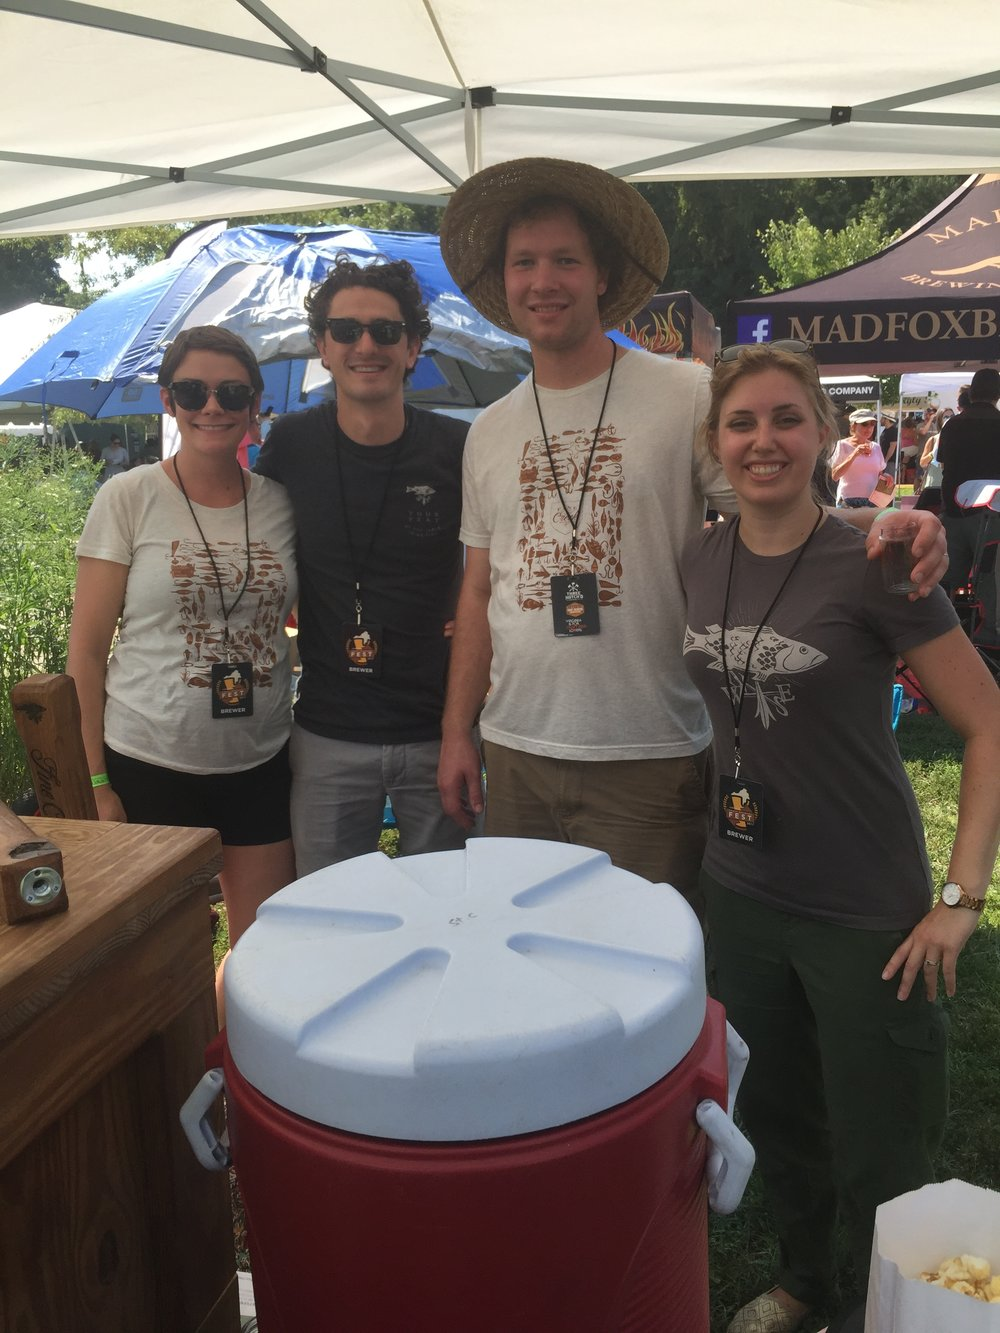 Fine Creek Brewing 's Mark Benusa and Gabe Slagle got assistance from their wives at the festival.